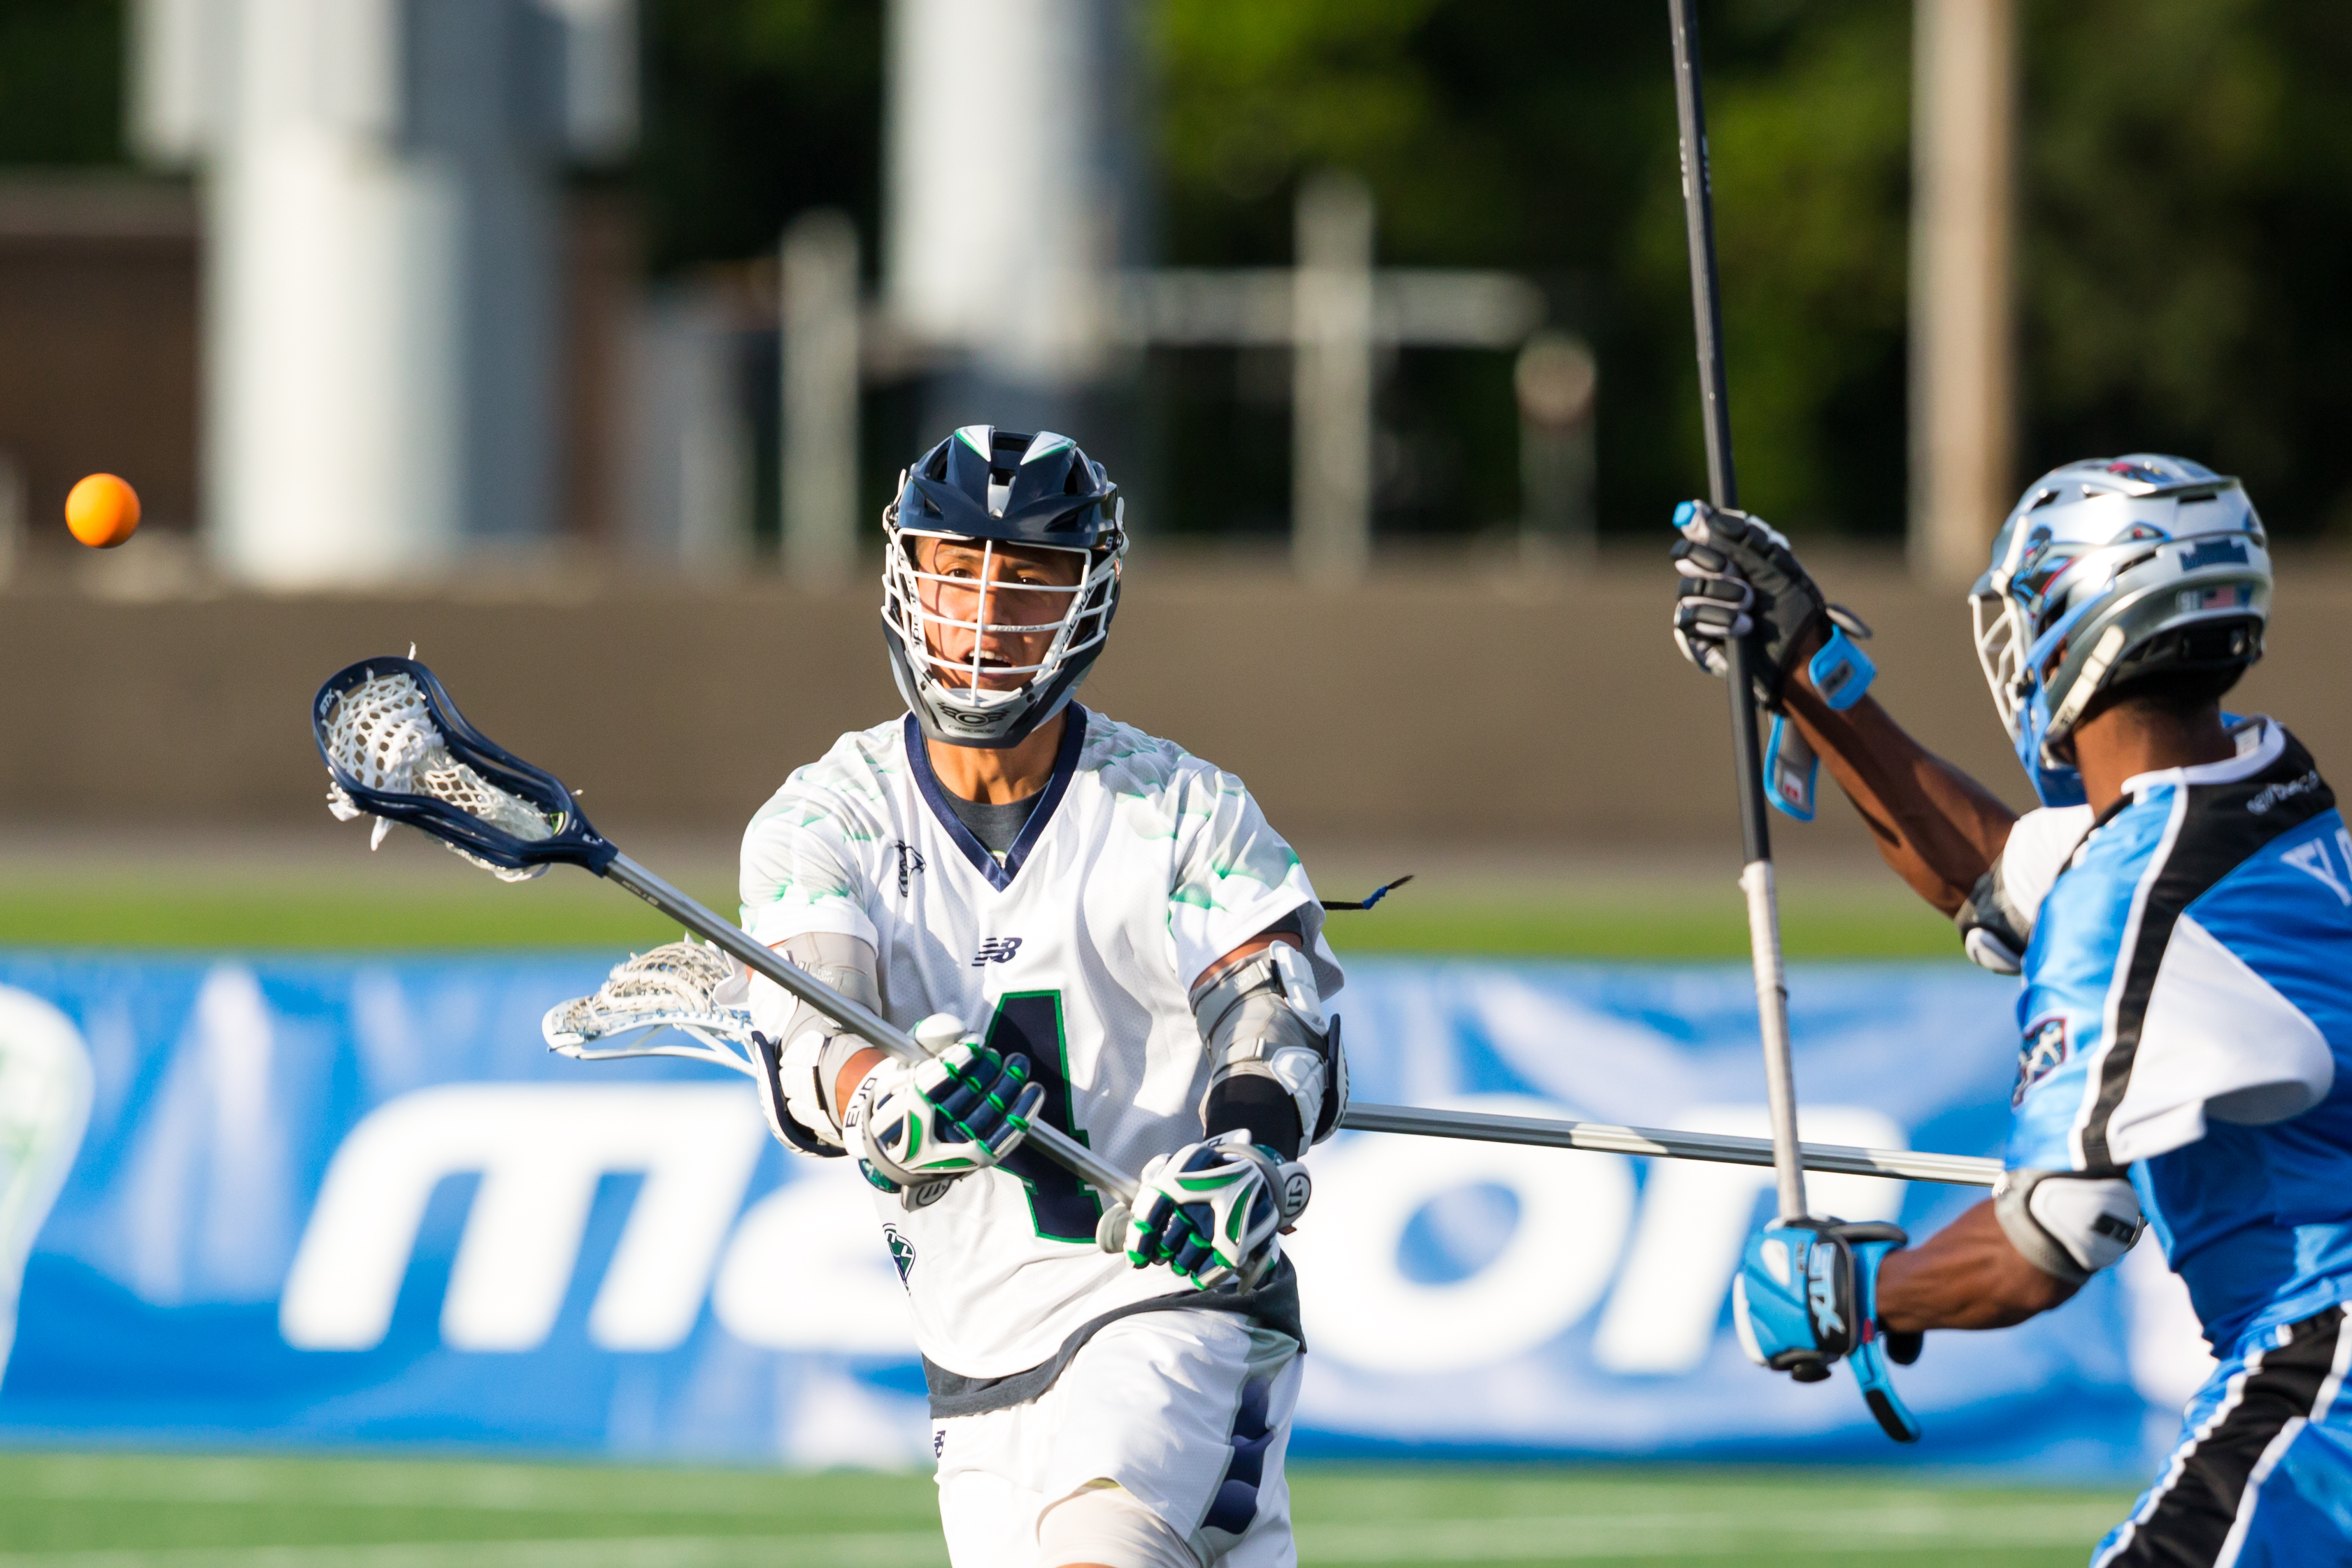 June 24, 2017; Columbus, OH, USA; Chesapeake Bayhawks @ Ohio Machine at Obetz Fortress Field. (Photo: Major League Lacrosse)